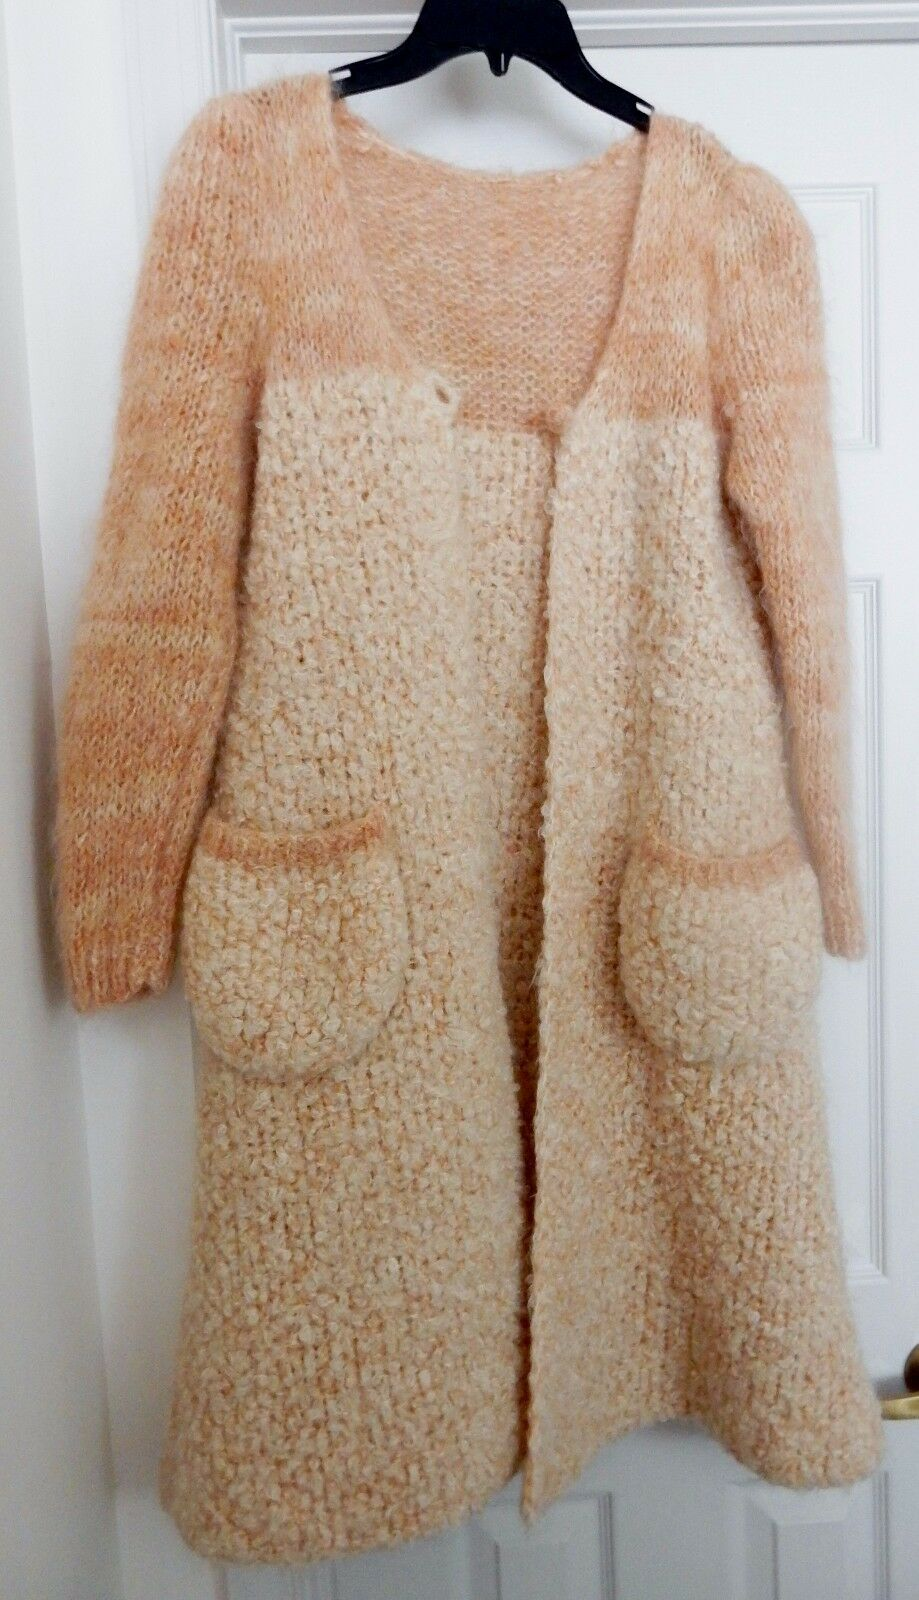 HAND KNIT Sweater Sweater Sweater Wool Blend Mohair L S Boucle Curly Lamb Look Peach No Size S M c304aa